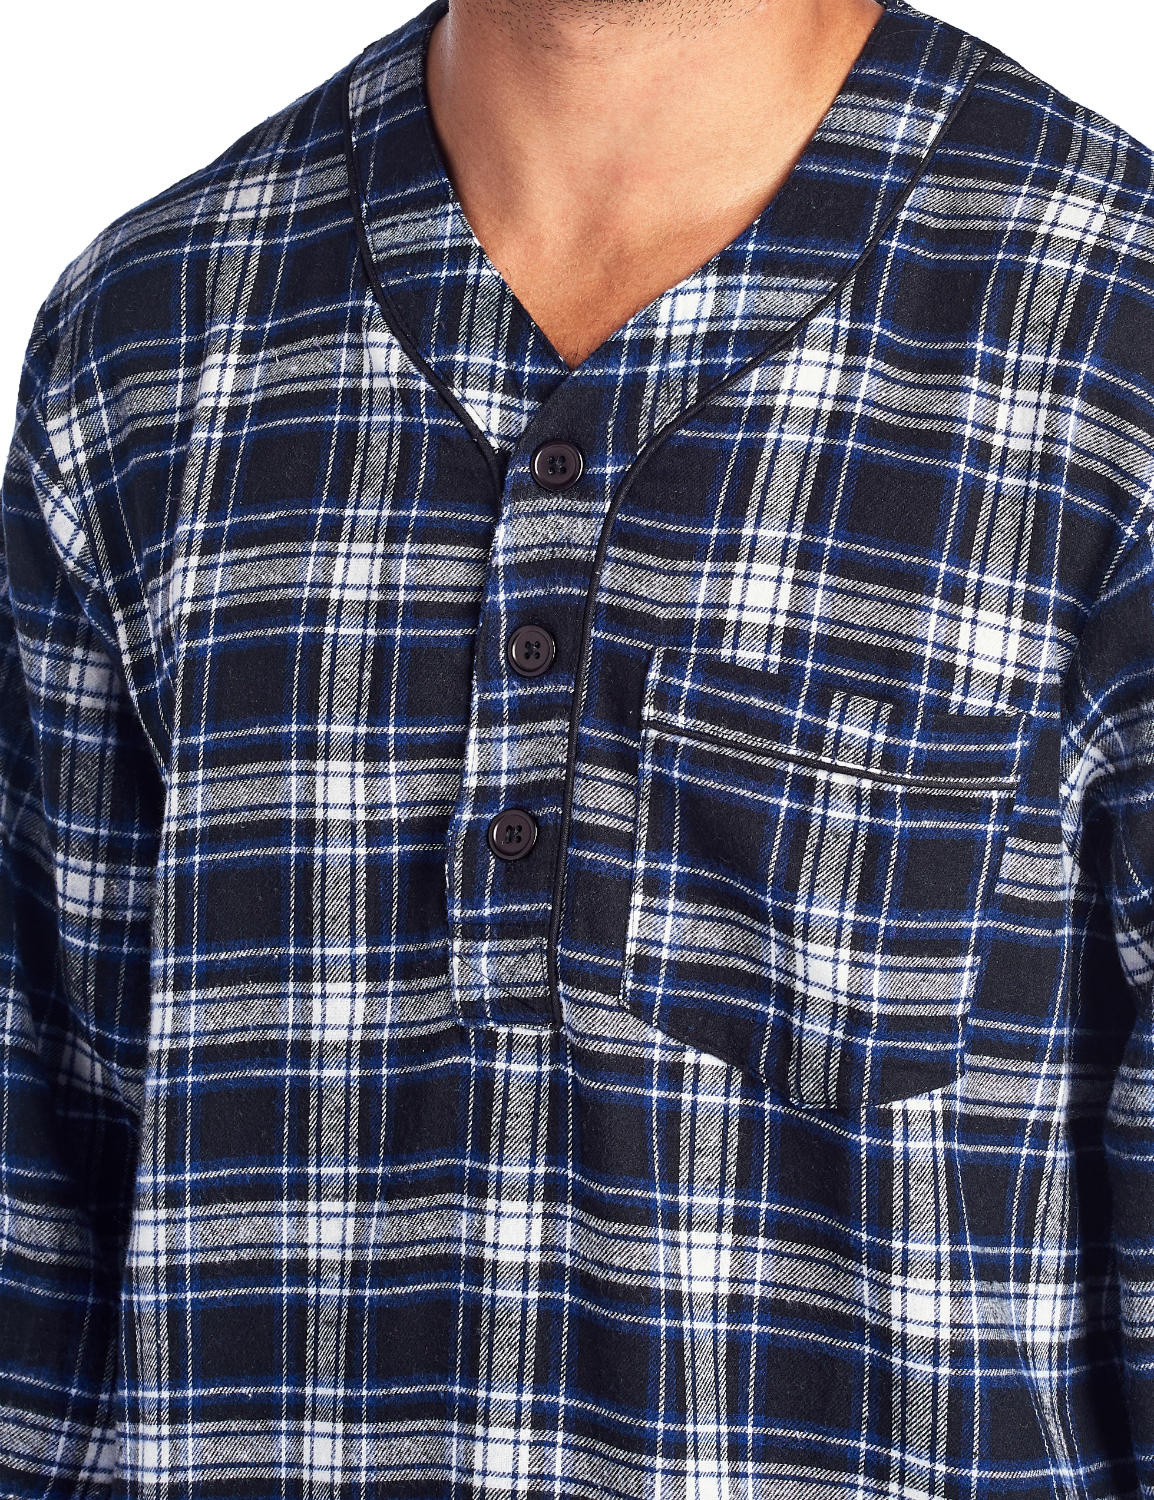 Ashford   Brooks - Ashford   Brooks Mens Flannel Plaid Long Sleep Shirt  Henley Nightshirt - Walmart.com 7f7ee4e05